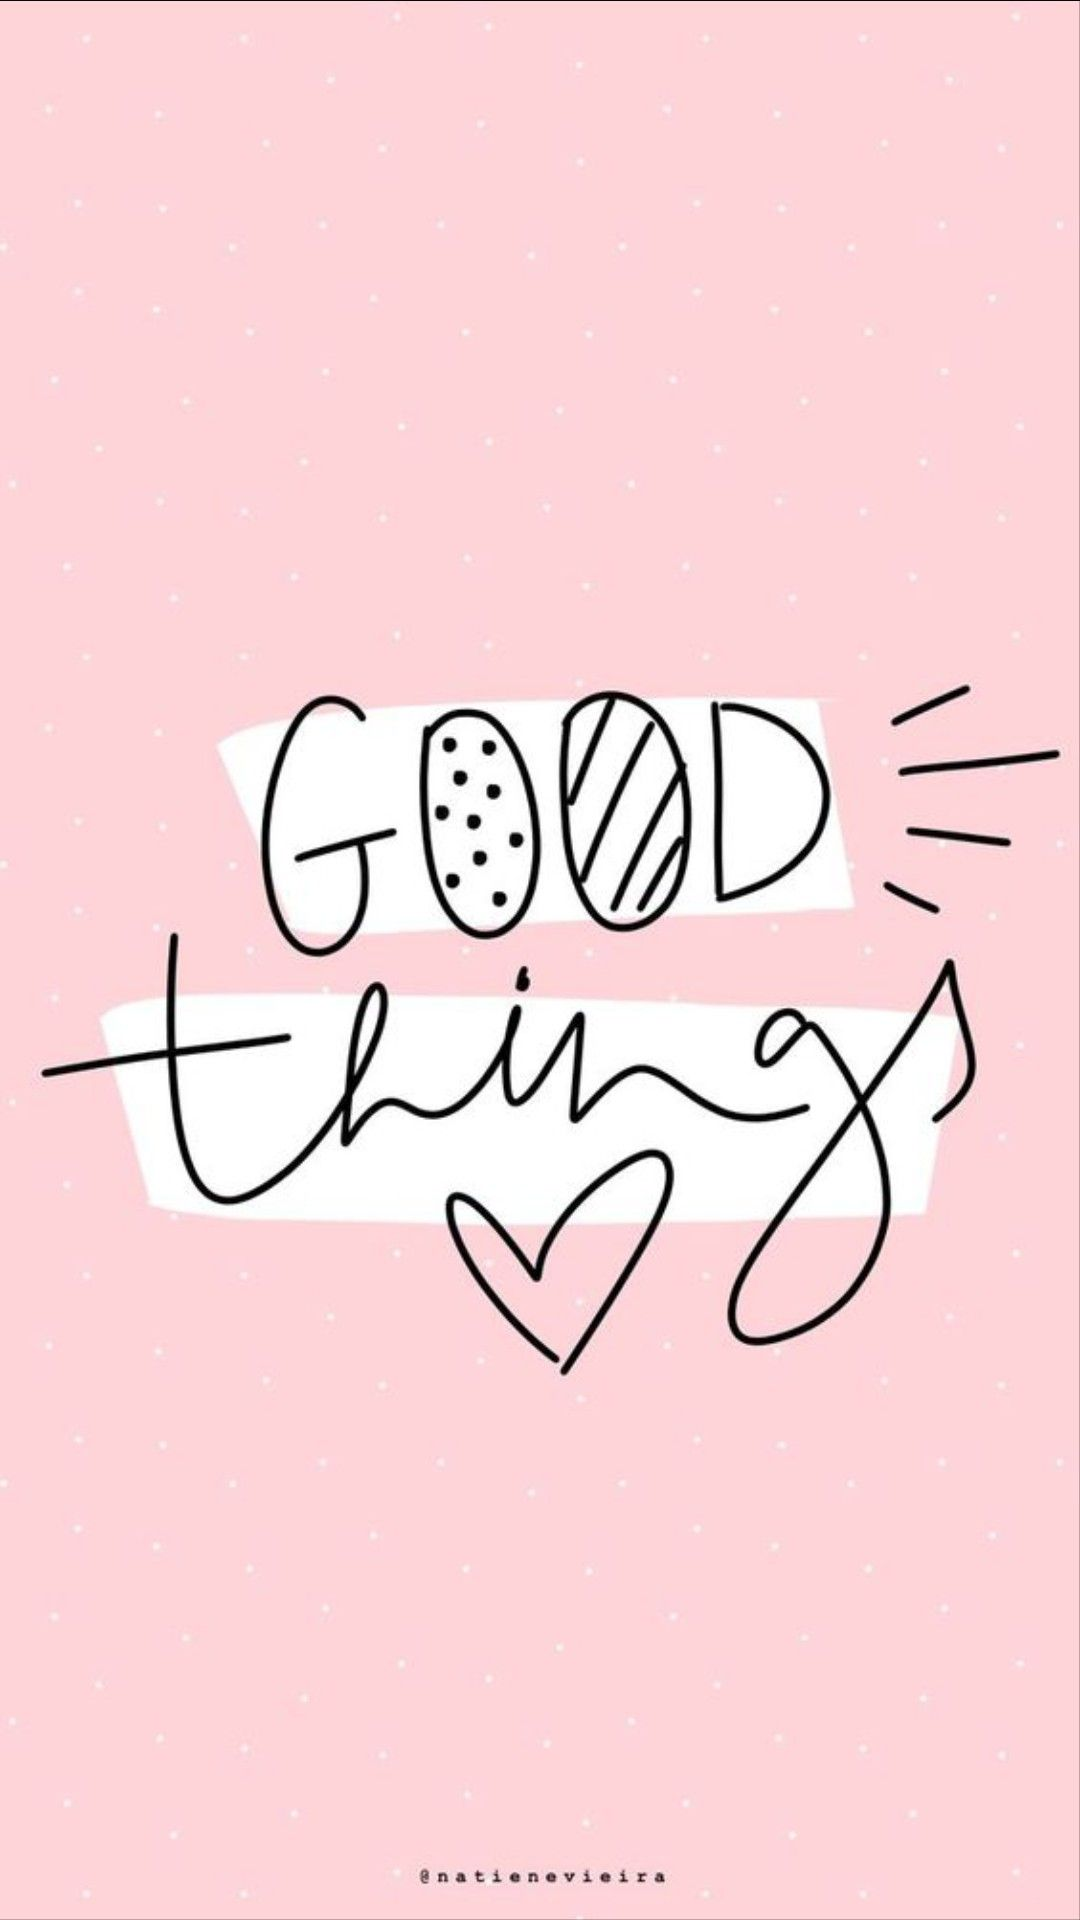 Hd Quote Wallpaper Quotes Wallpapers Life Quote Good Things Wallpaper Quotes Positive Wallpapers Cute Wallpaper For Phone